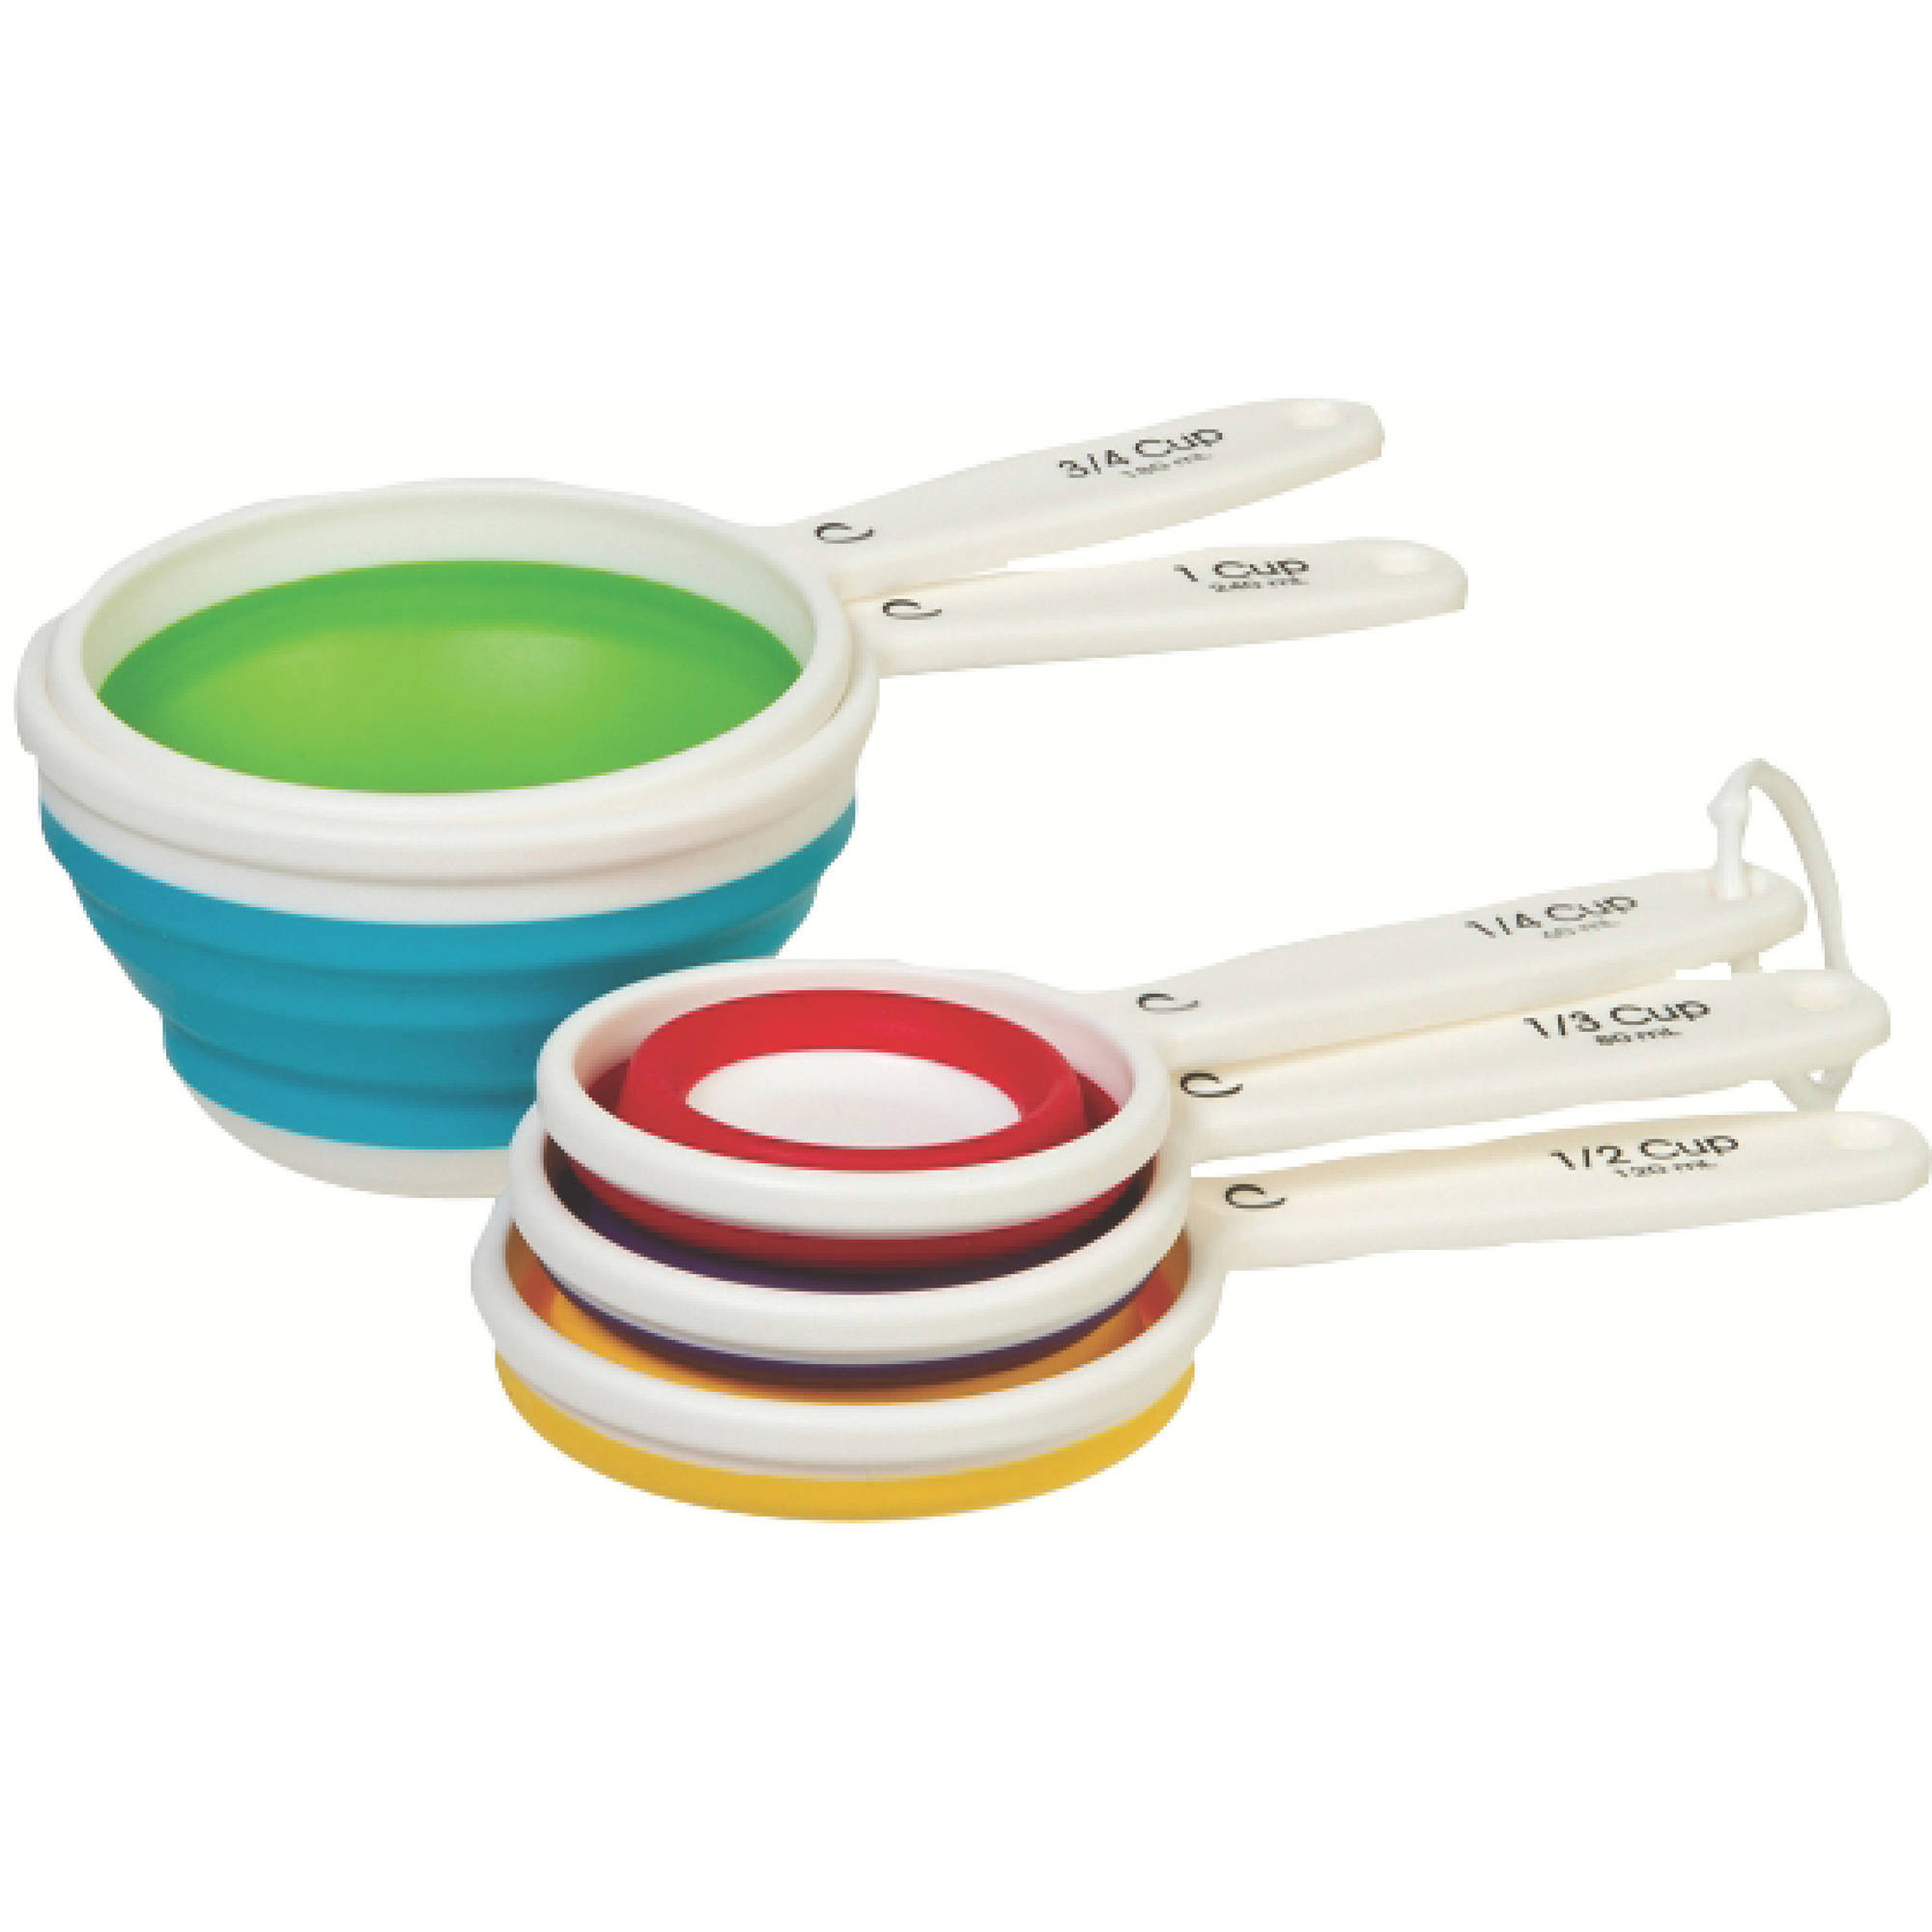 Prepworks Collapsible Measuring Cups, Five Piece Set